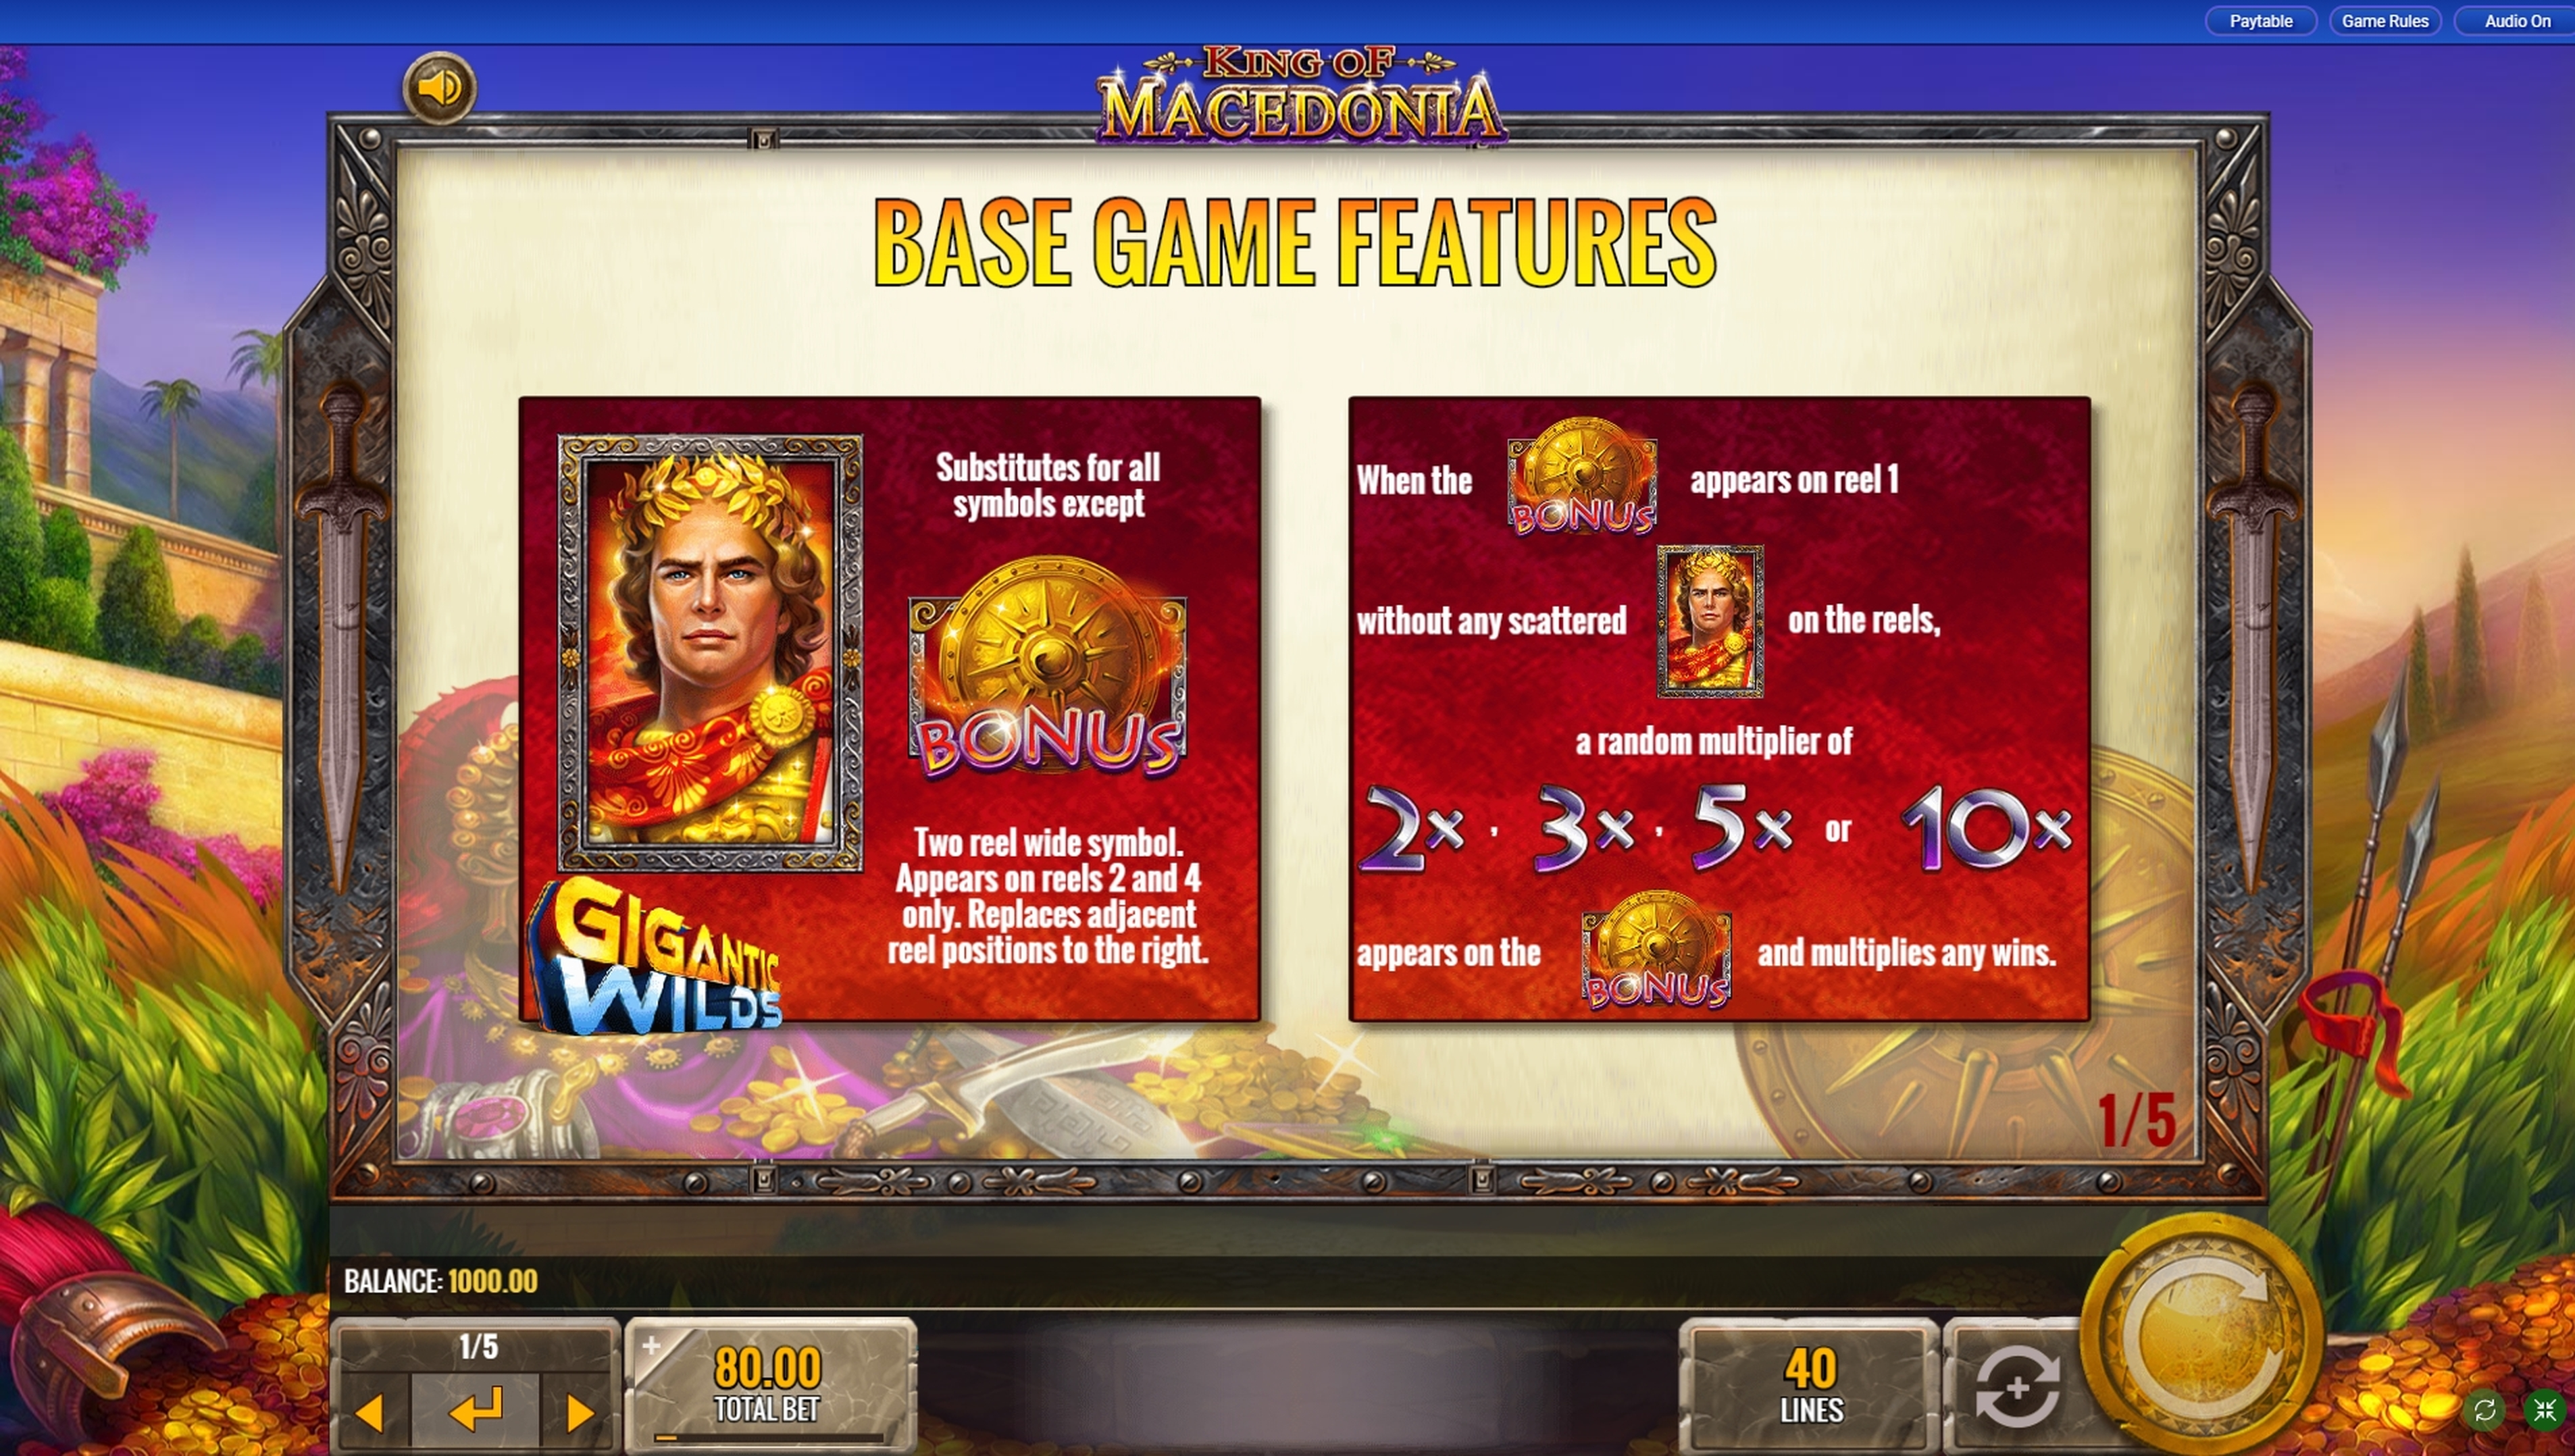 IGT Releases New King Of Macedonia Slot